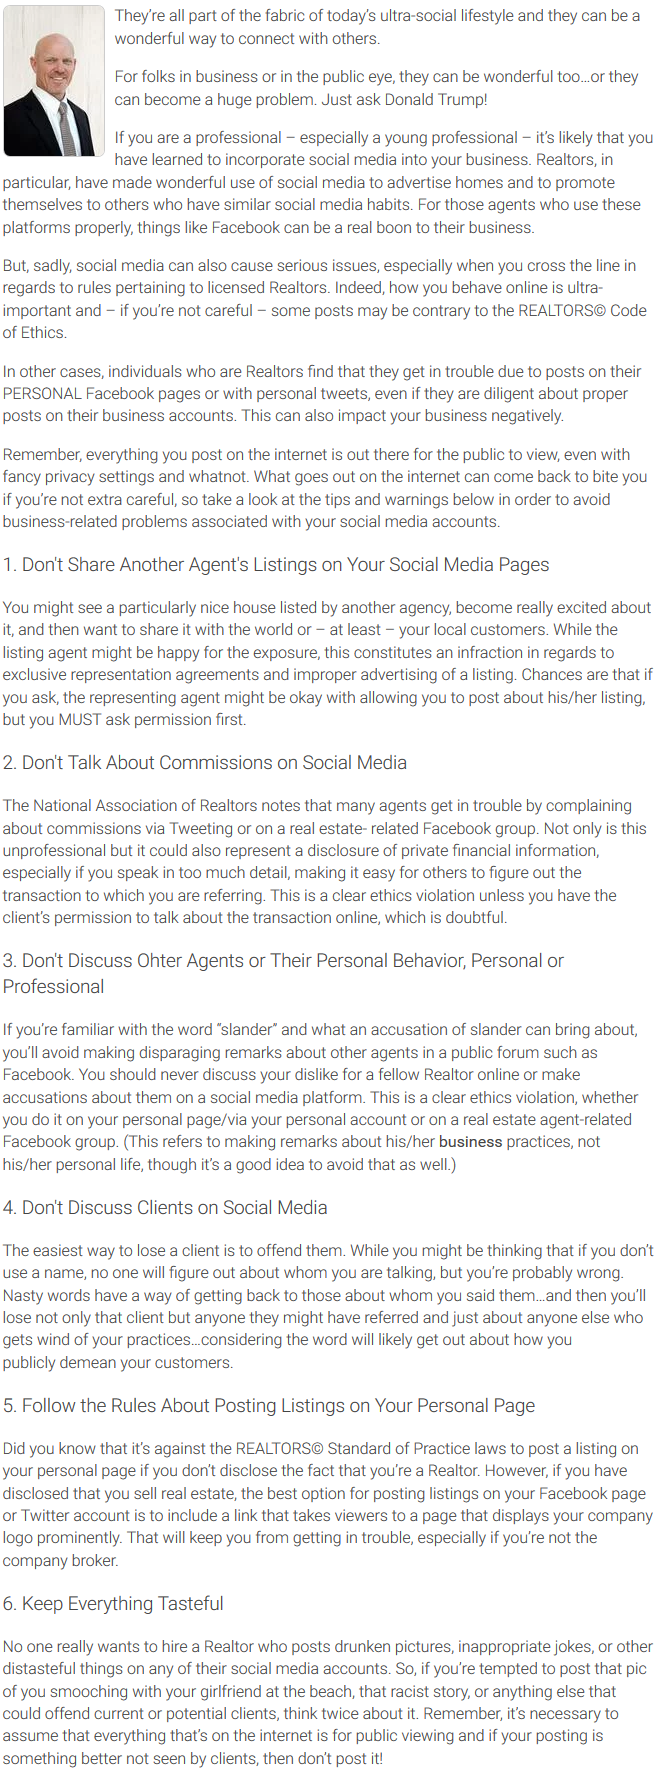 Agent Insights - Social Media and Today's REALTOR®